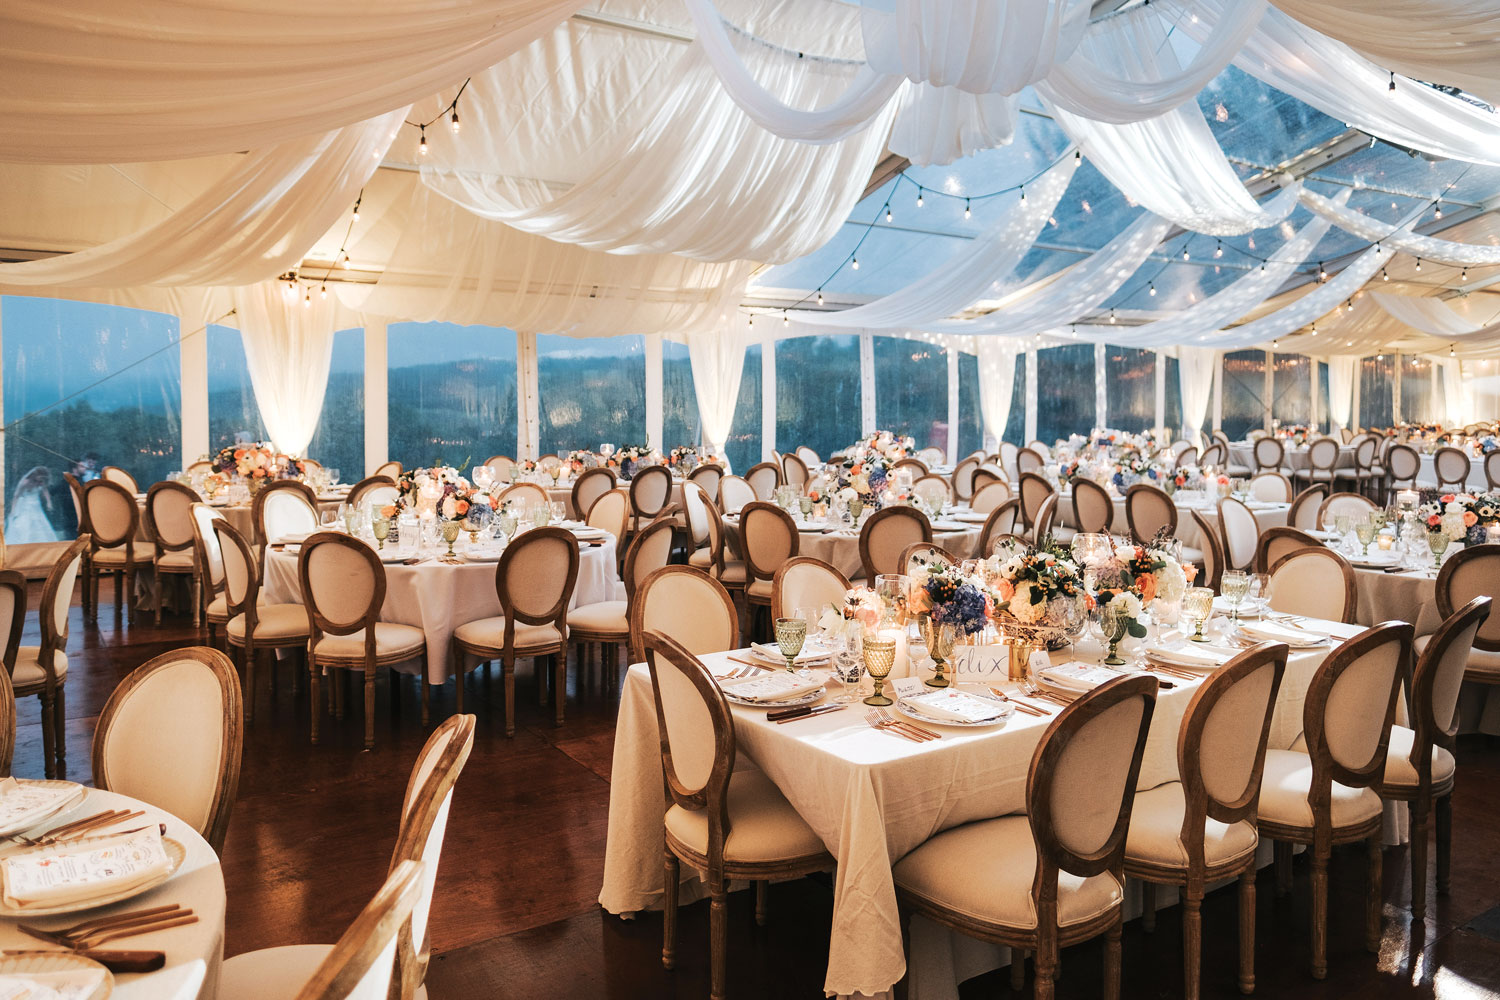 Inside Weddings Summer 2018 issue preview drapery over seating wedding reception